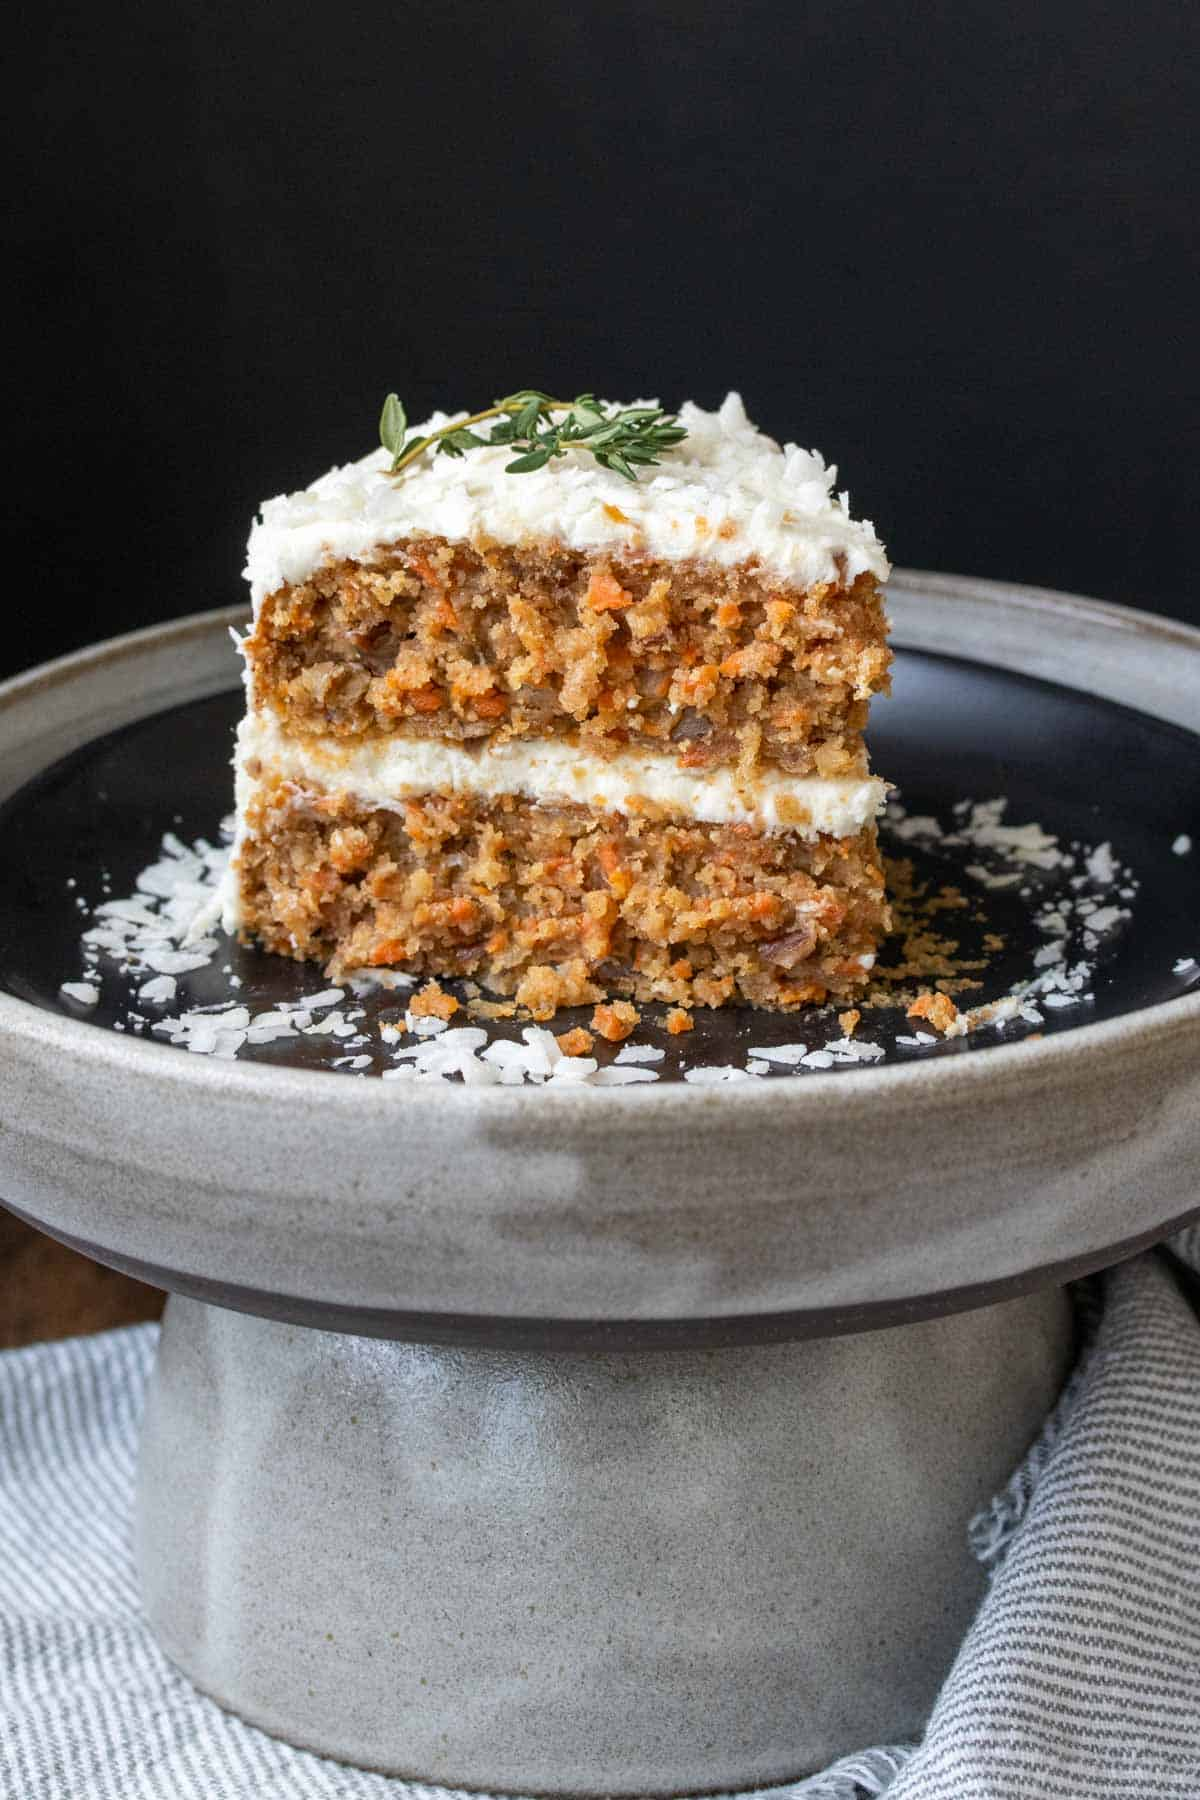 A slice of carrot cake with white frosting on a black plate